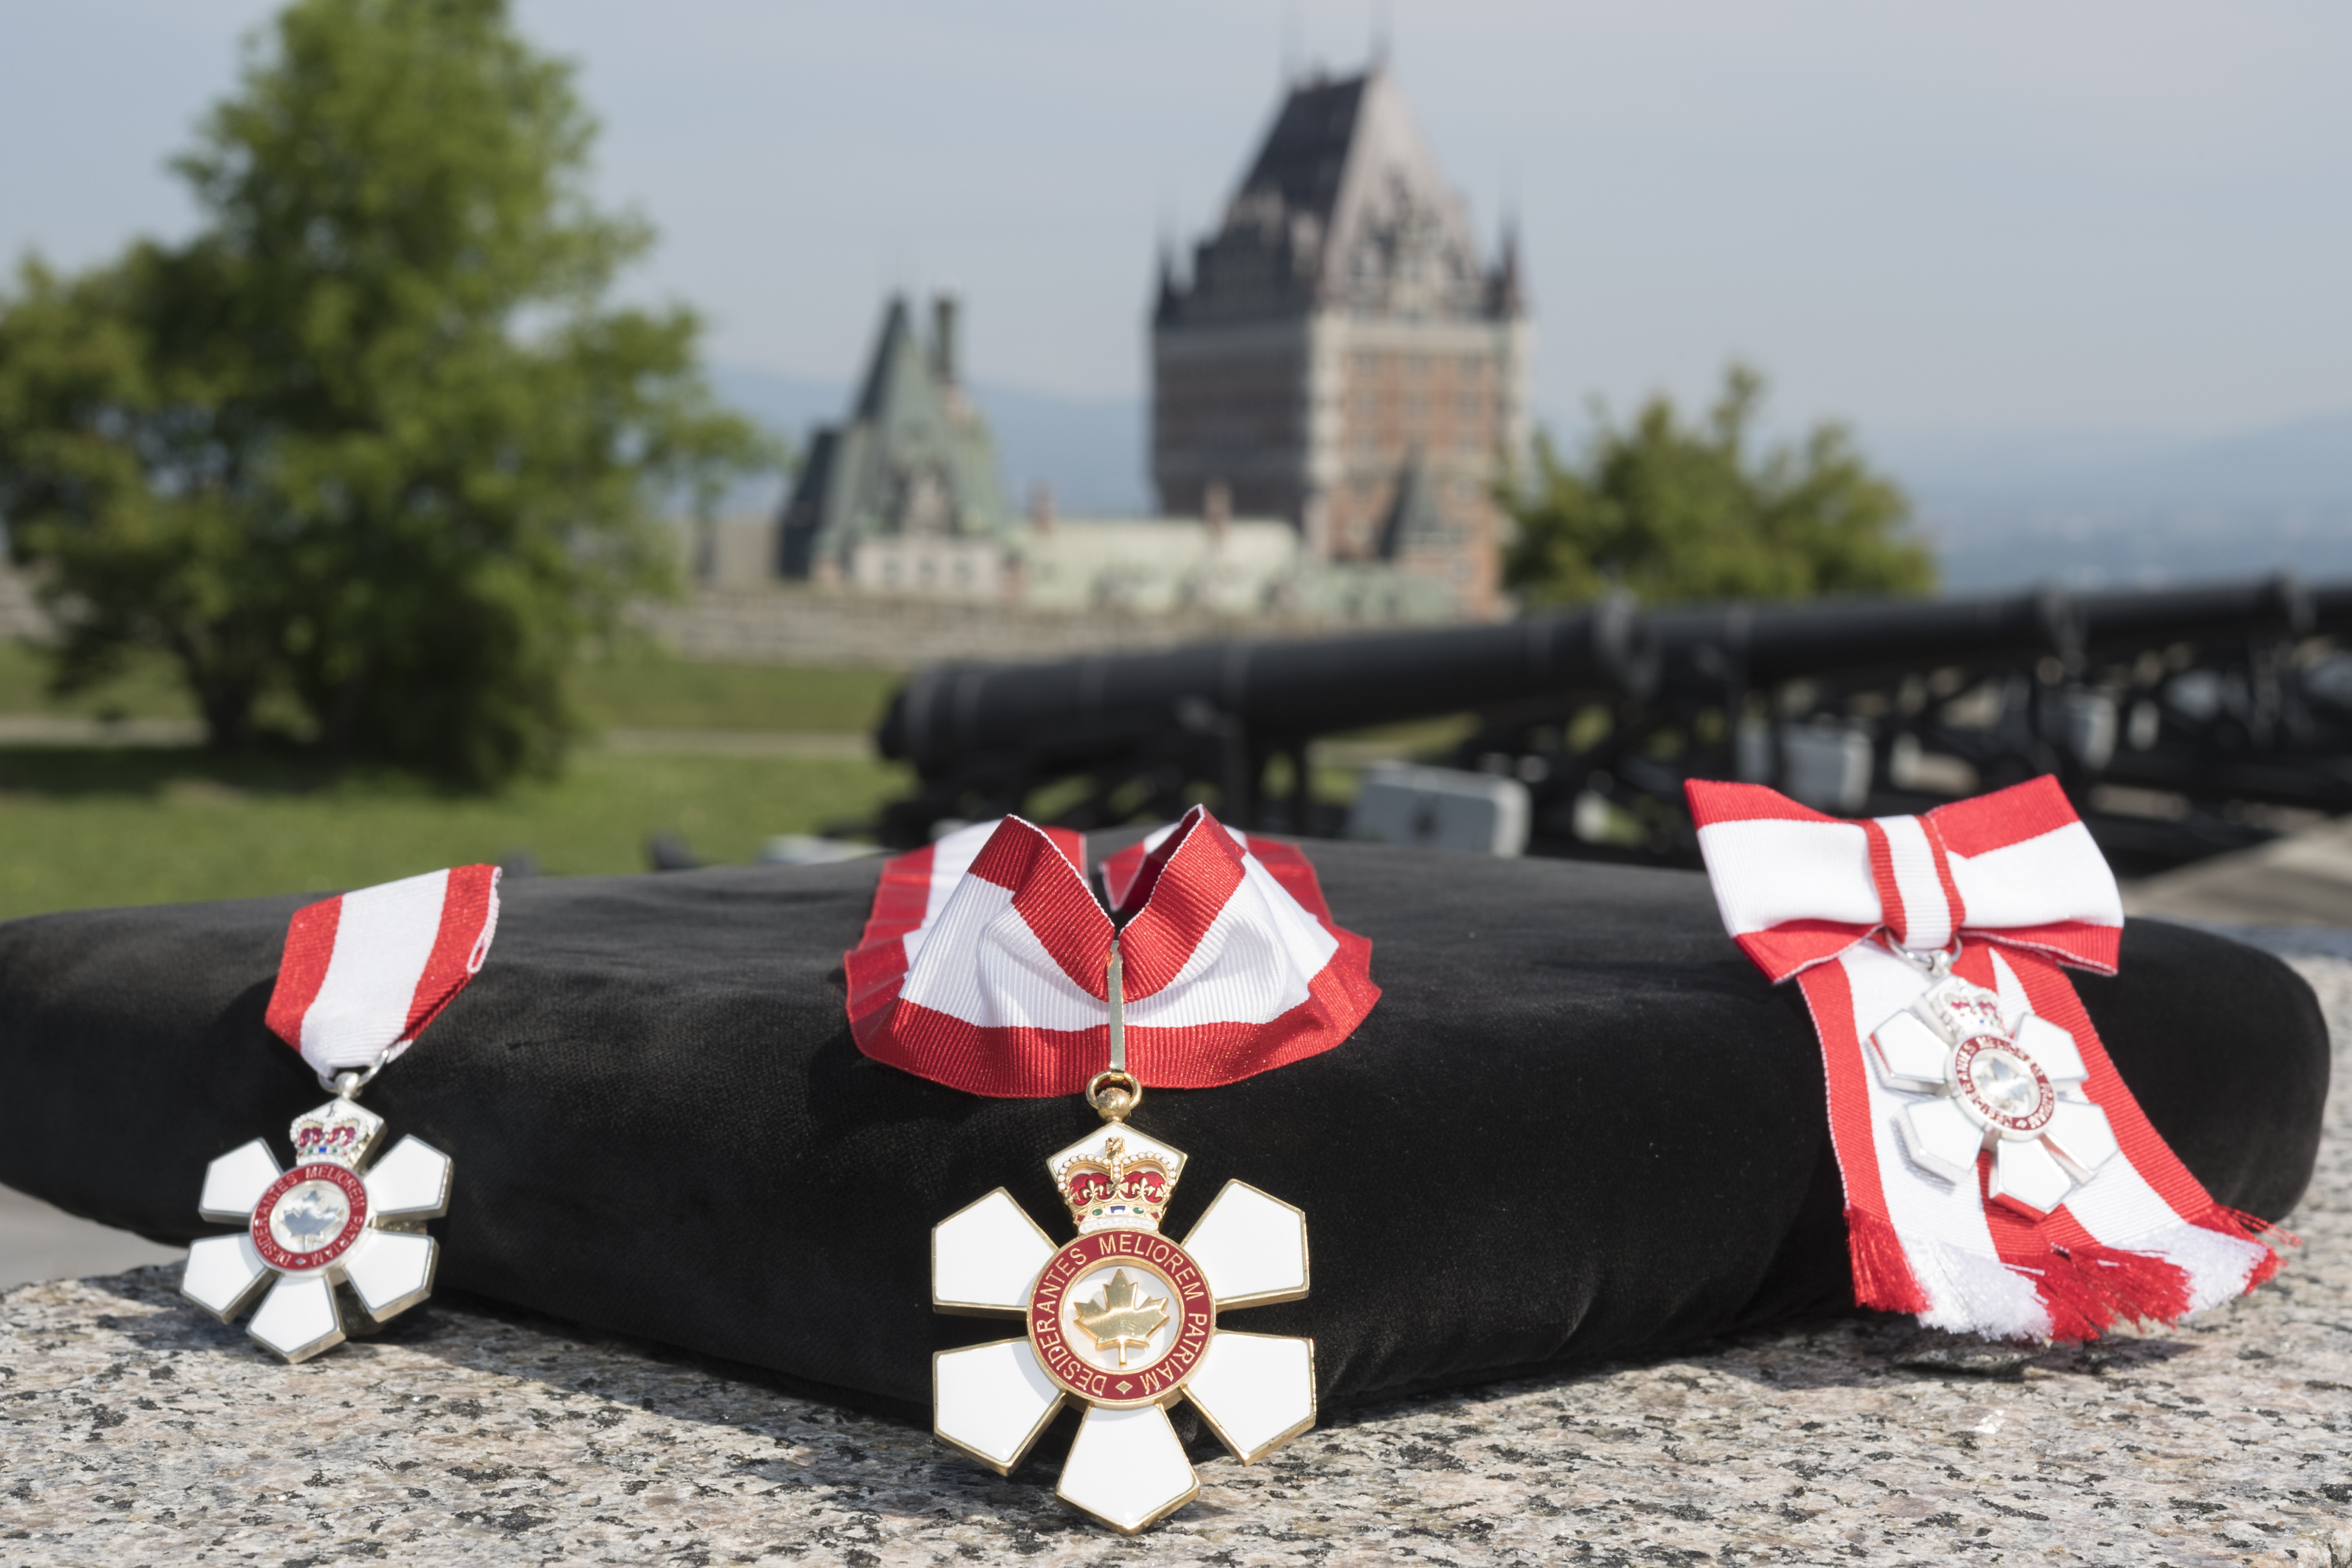 "Created in 1967, the Order of Canada, one of our country's highest civilian honours, recognizes outstanding achievement, dedication to the community and service to the nation. Close to 7 000 people from all sectors of society have been invested into the Order. Their contributions are varied, yet they have all enriched the lives of others and have taken to heart the motto of the Order: DESIDERANTES MELIOREM PATRIAM (""They desire a better country"")."